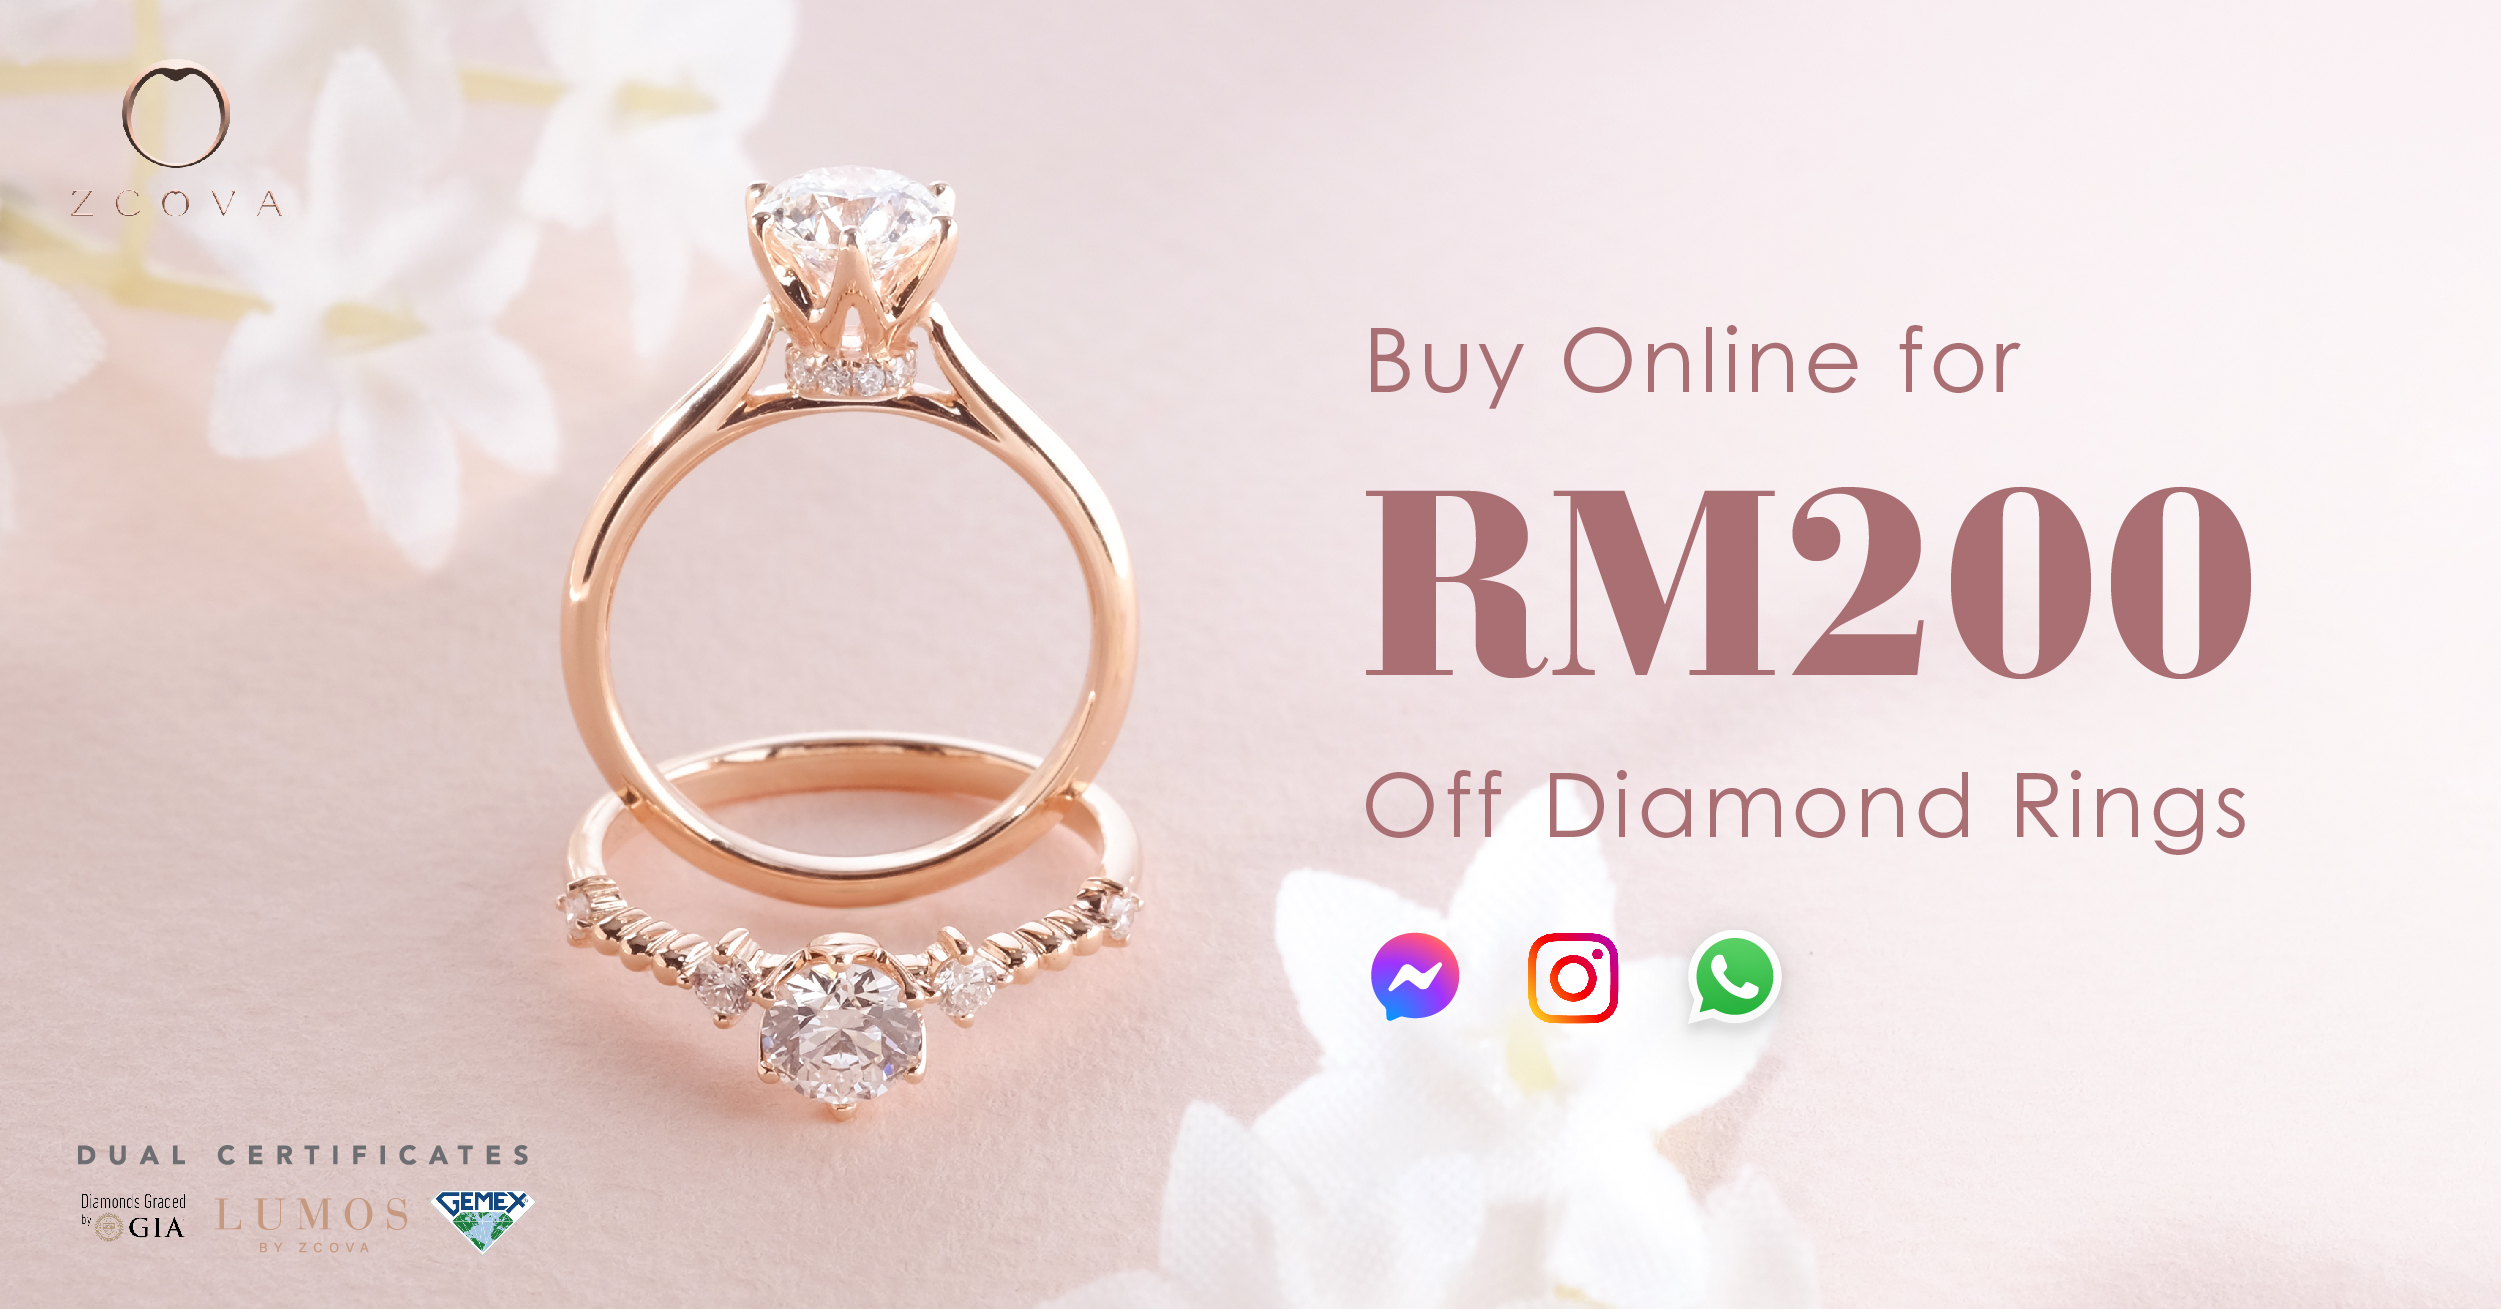 buy online for rm200 off diamond rings from zcova